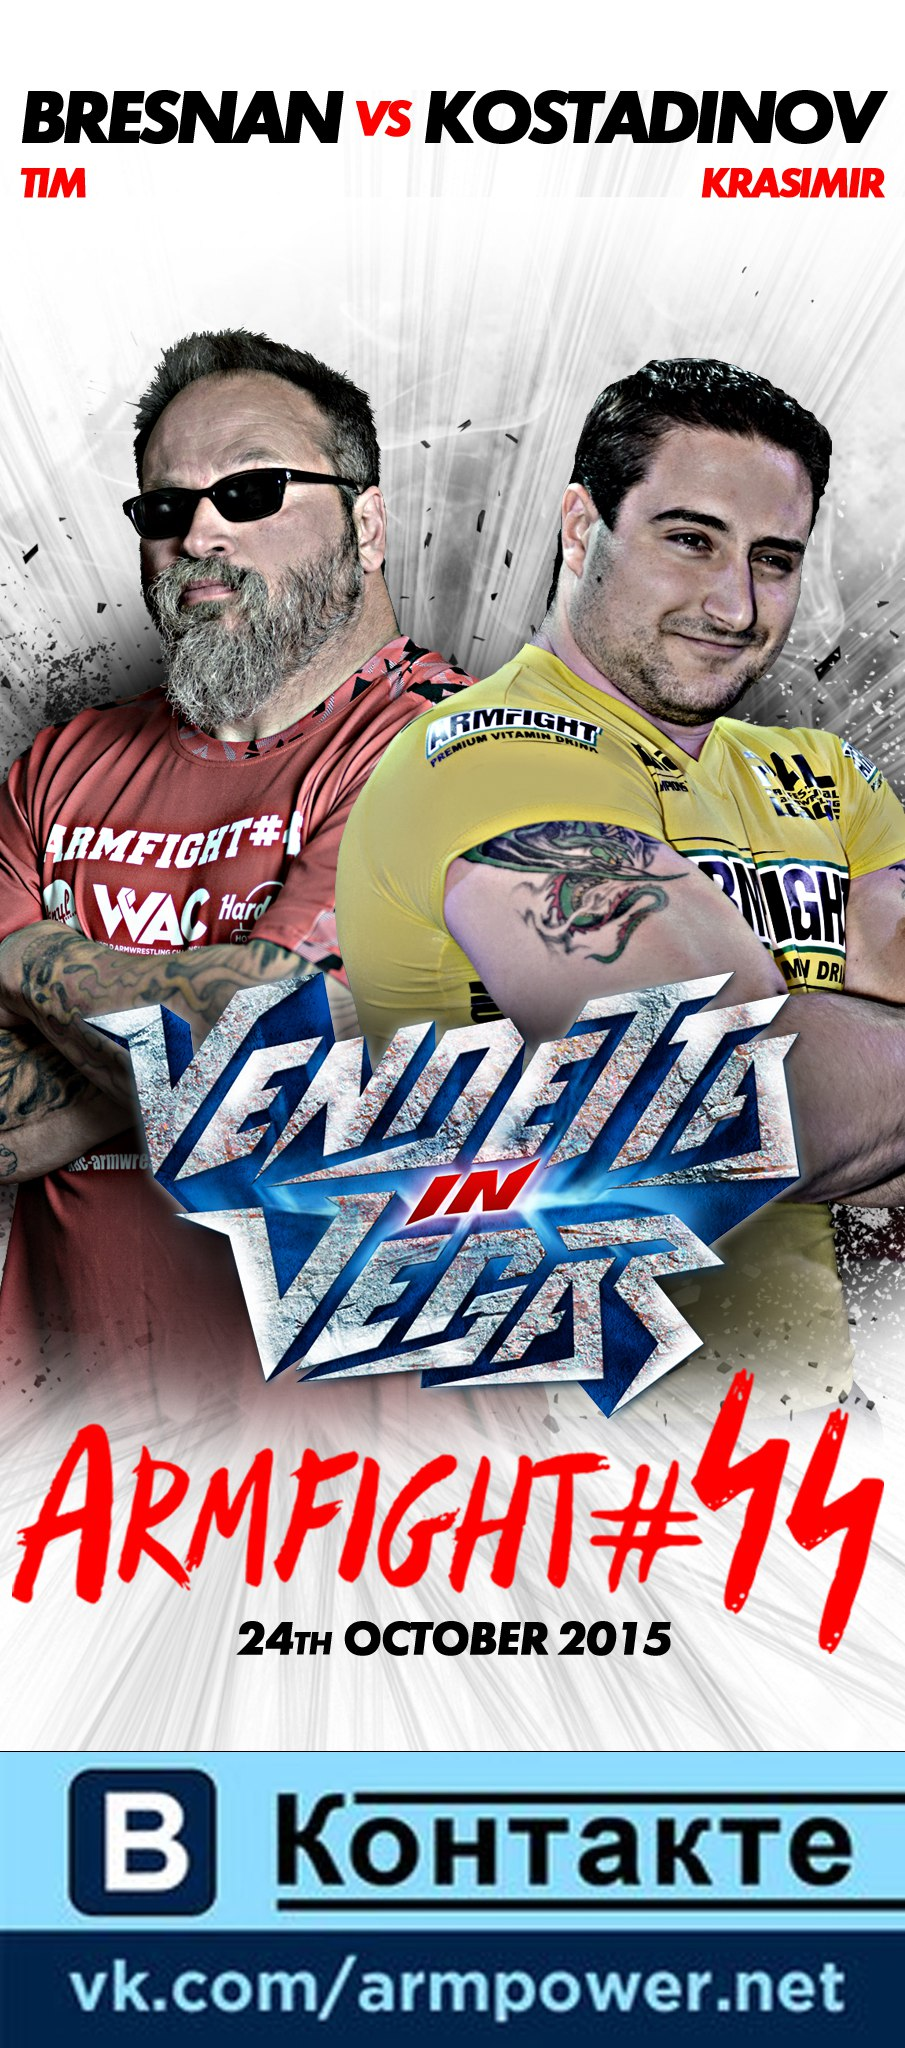 Tim Bresnan vs. Krasimir Kostadinov, Armfight 44, Vendetta in Vegas, 24 October 2015 │ Image Source: ARMWRESTLING / Armwrestling / Arm wrestling HOME